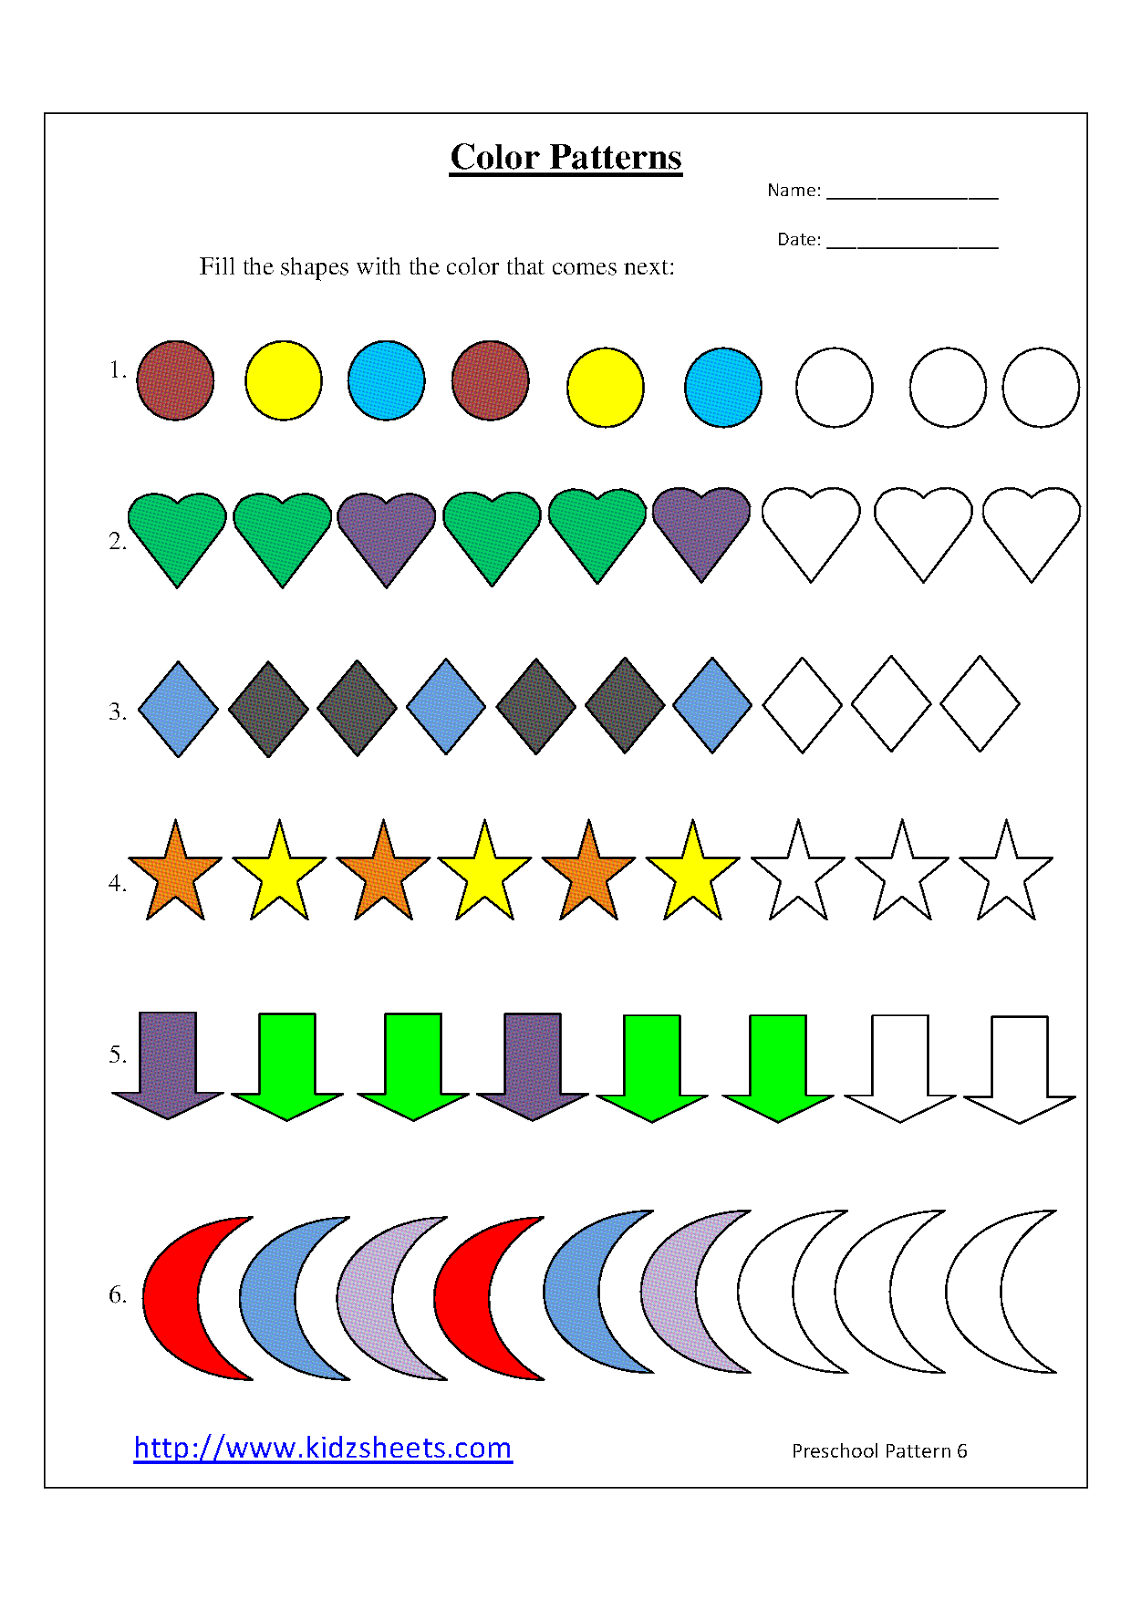 Kidz Worksheets Preschool Color Patterns Worksheet6